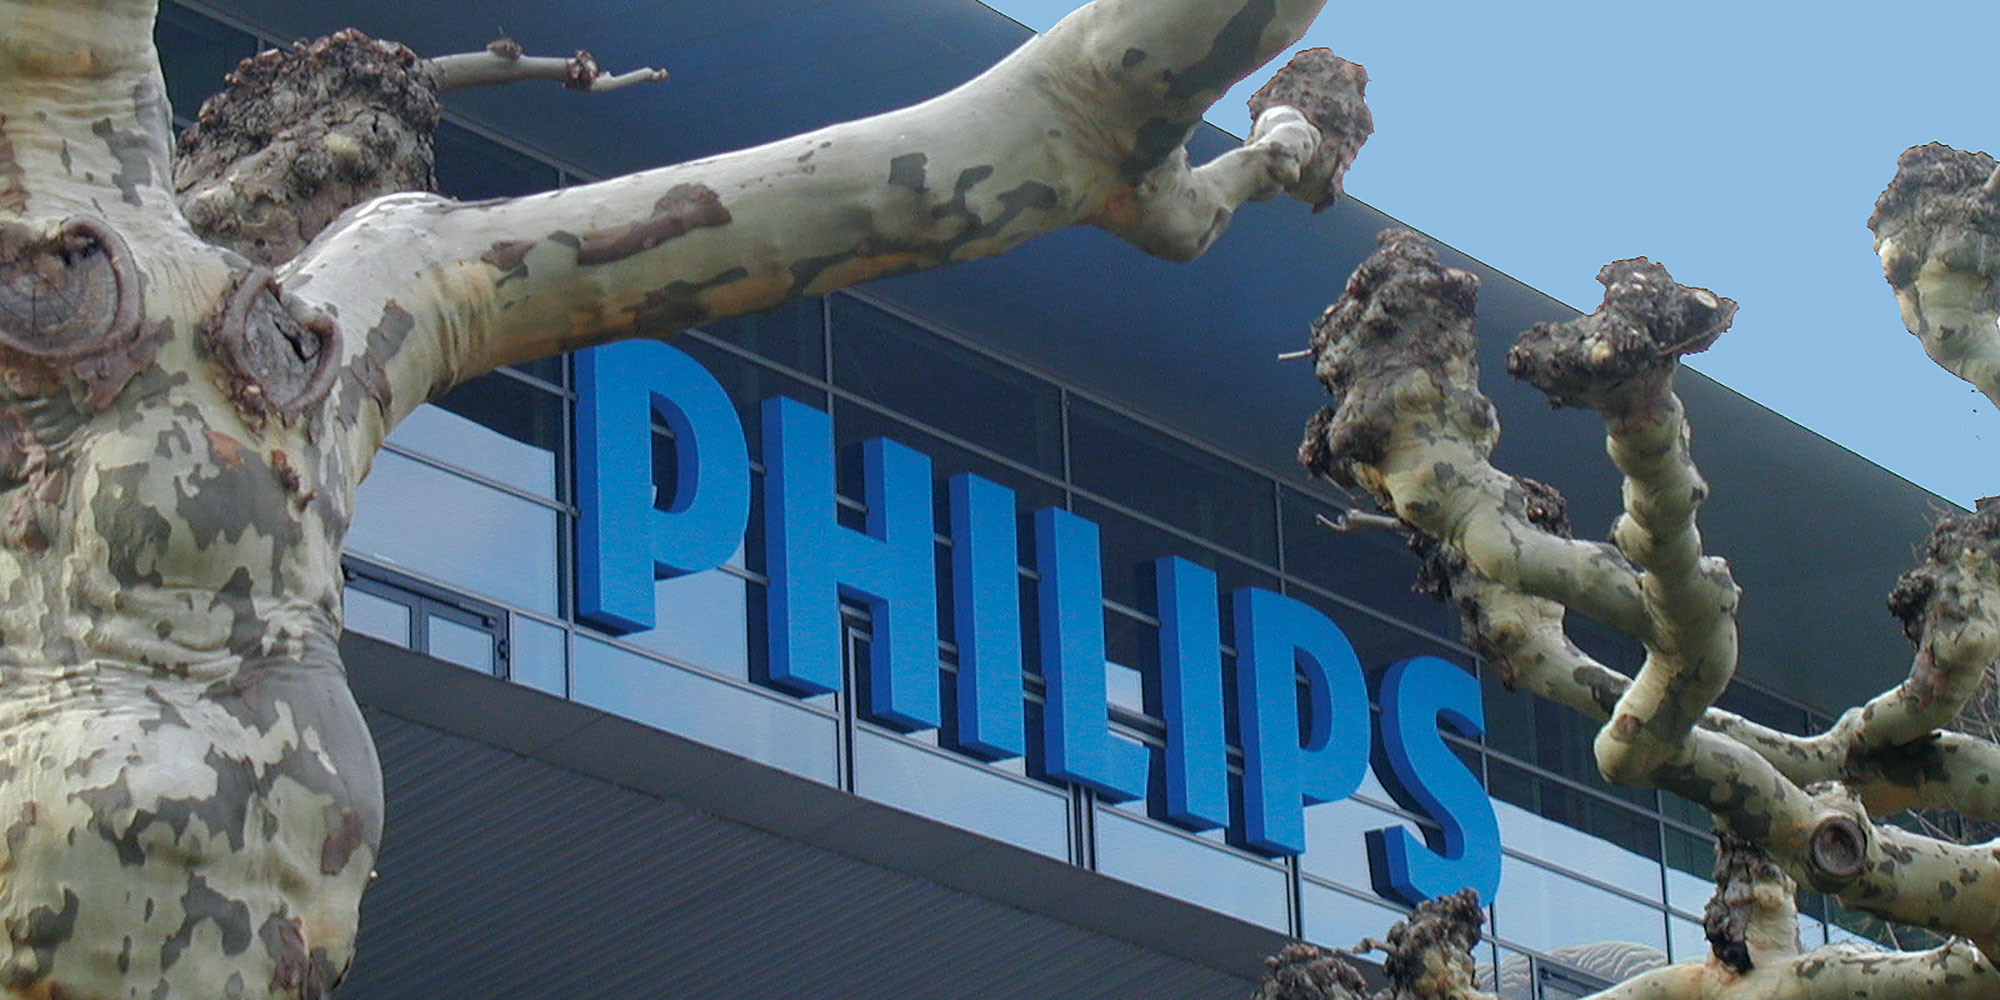 Phillips Messe, Frankfurt